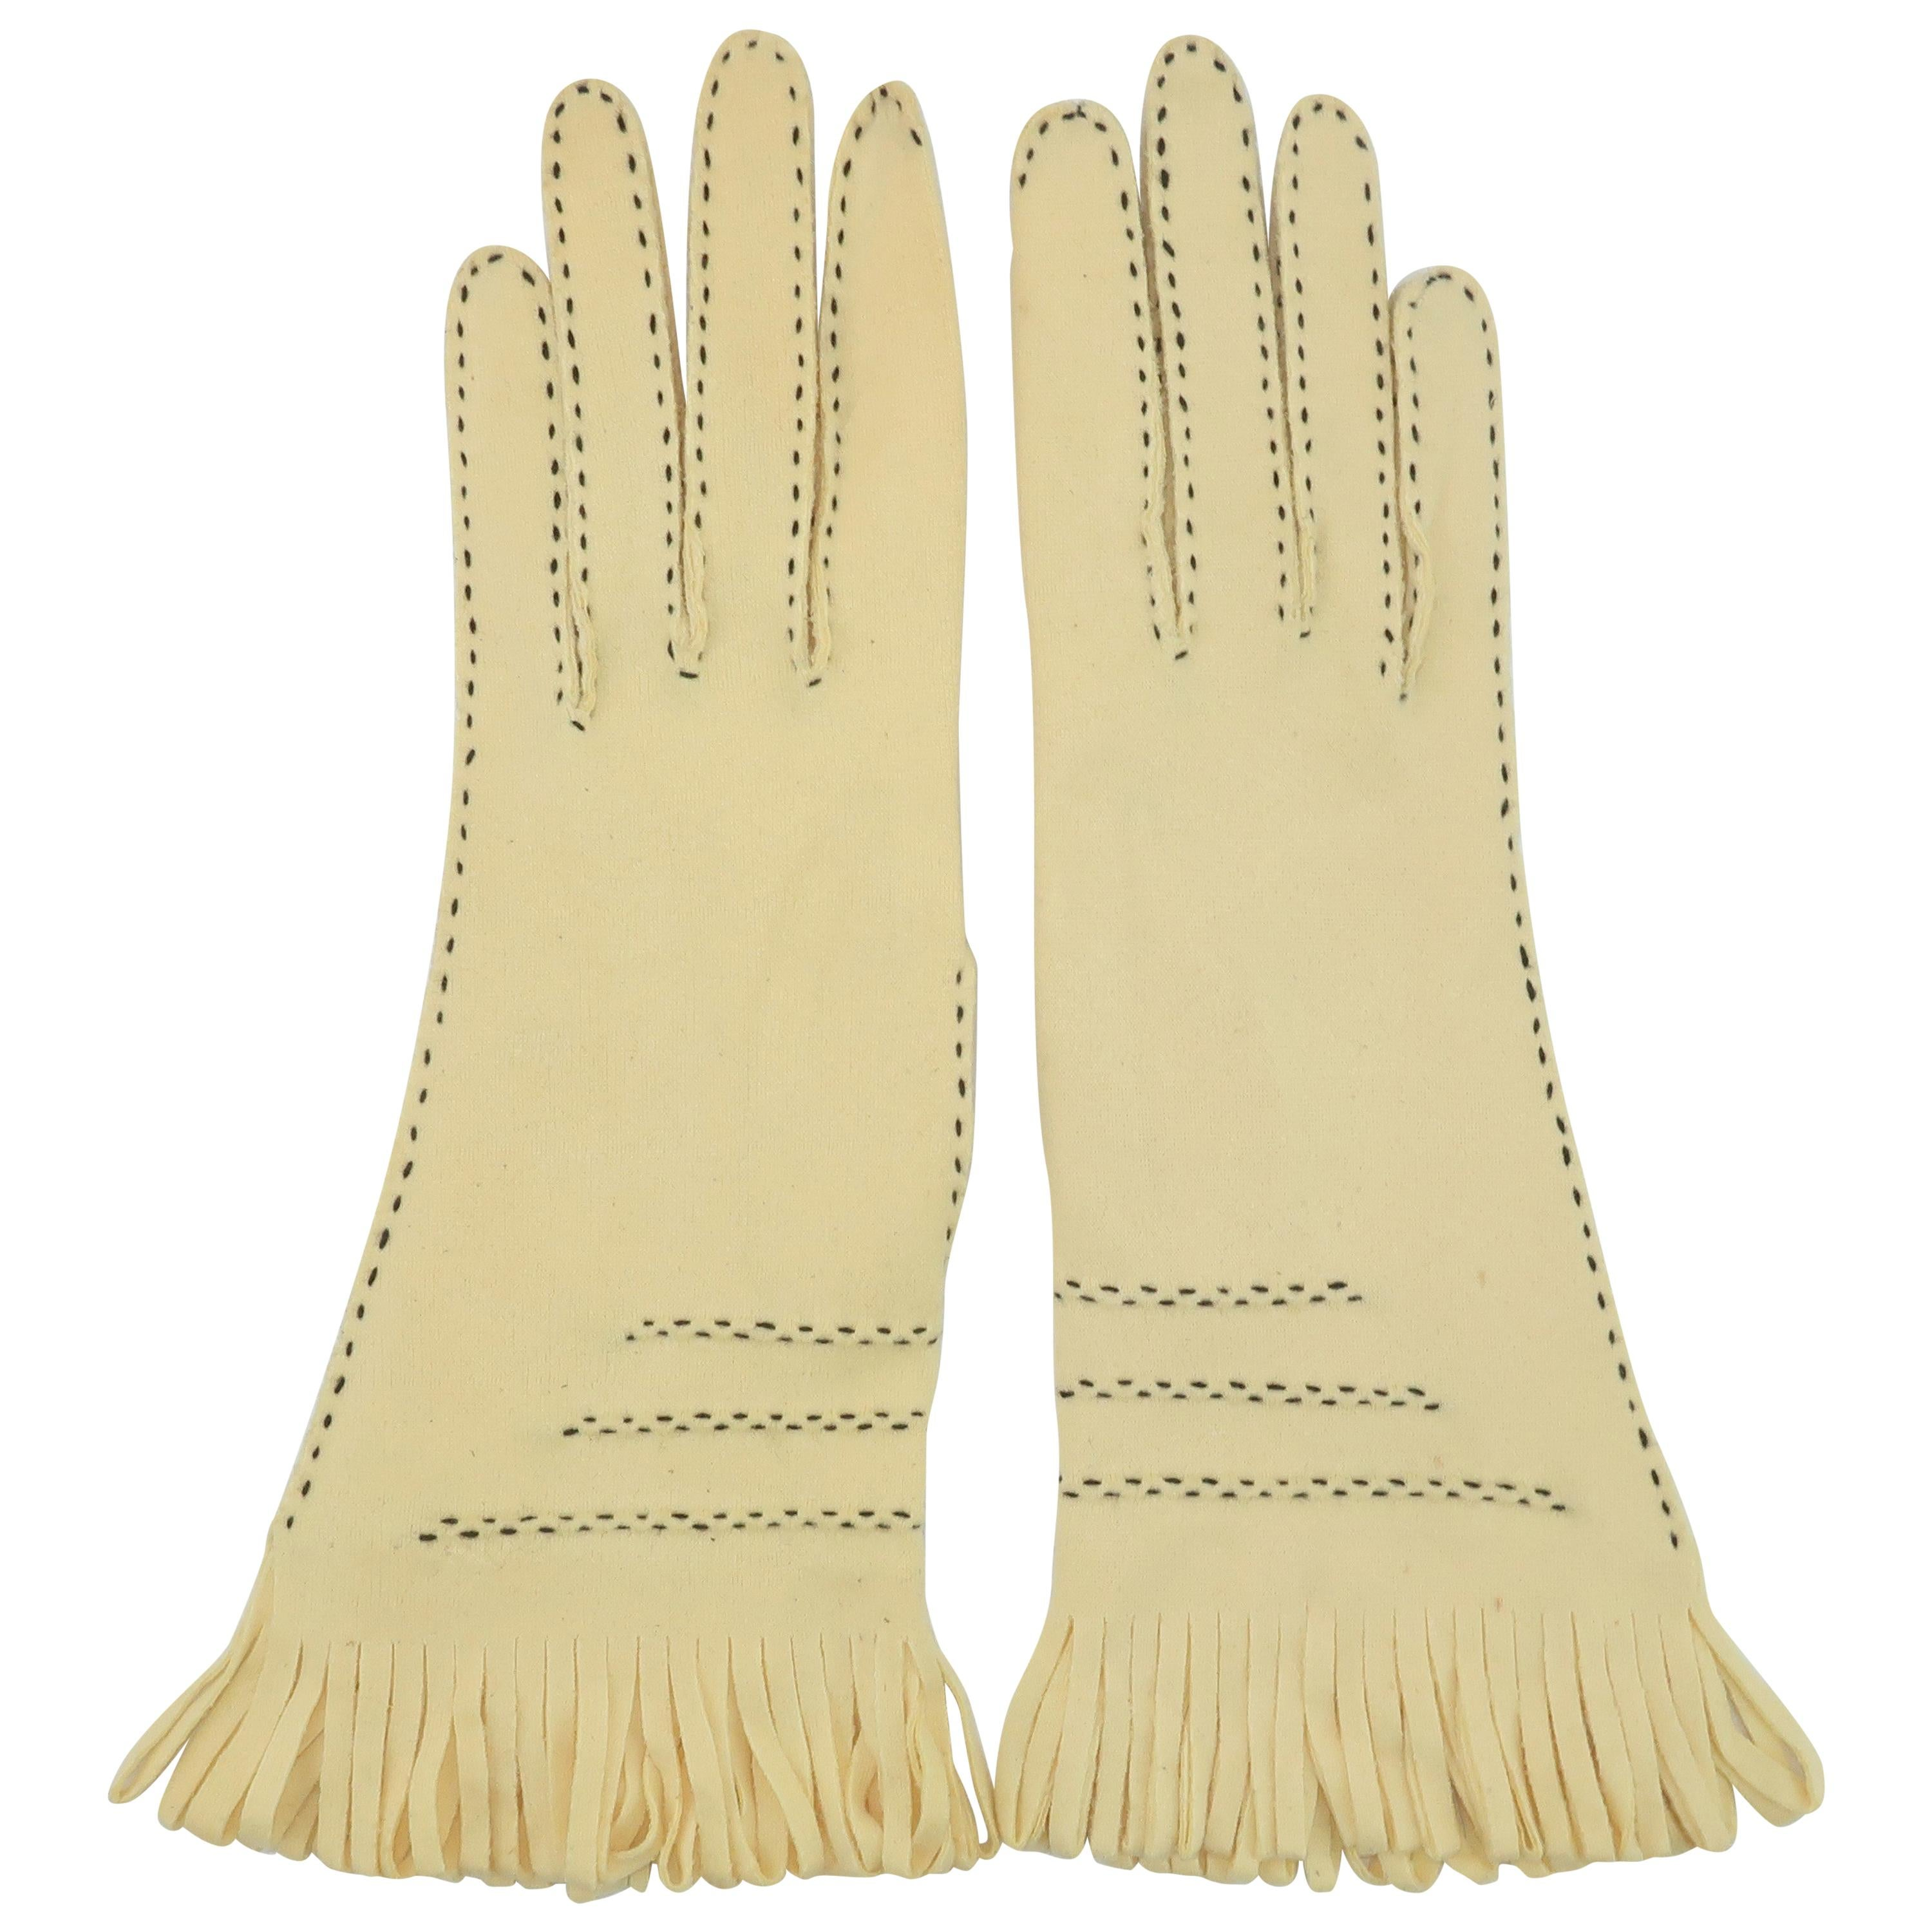 Fabric Western Style Gauntlet Gloves With Fringe Details, 1960's